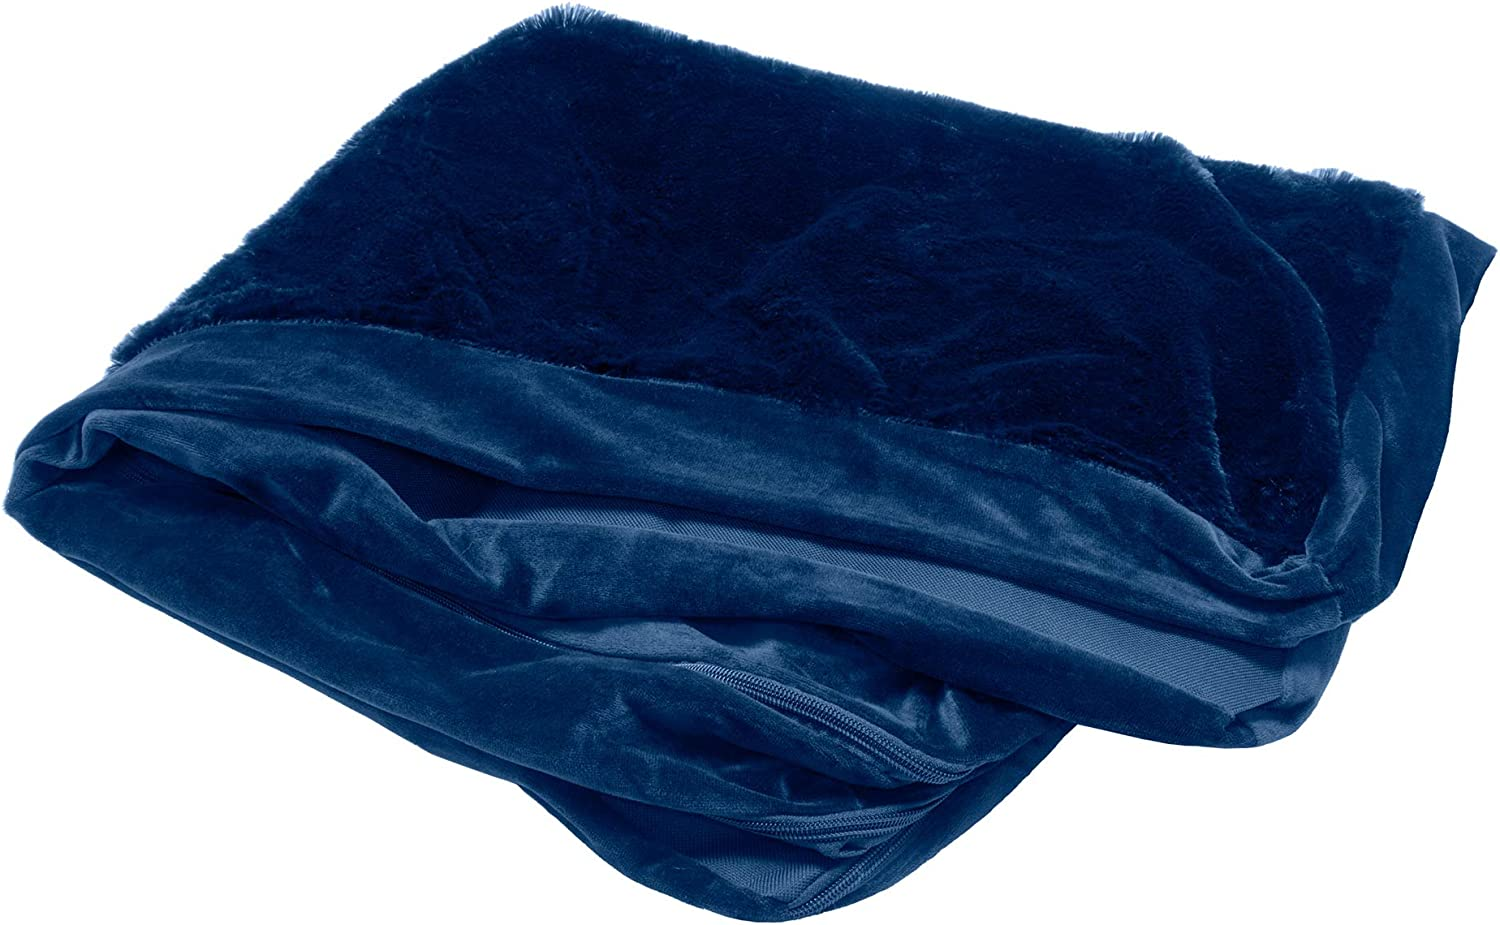 Medium Plush Faux Fur /& Velvet L Shaped Chaise Lounge Living Room Corner Couch Pet Bed Replacement Cover for Dogs /& Cats Furhaven Pet Dog Bed Cover Deep Sapphire